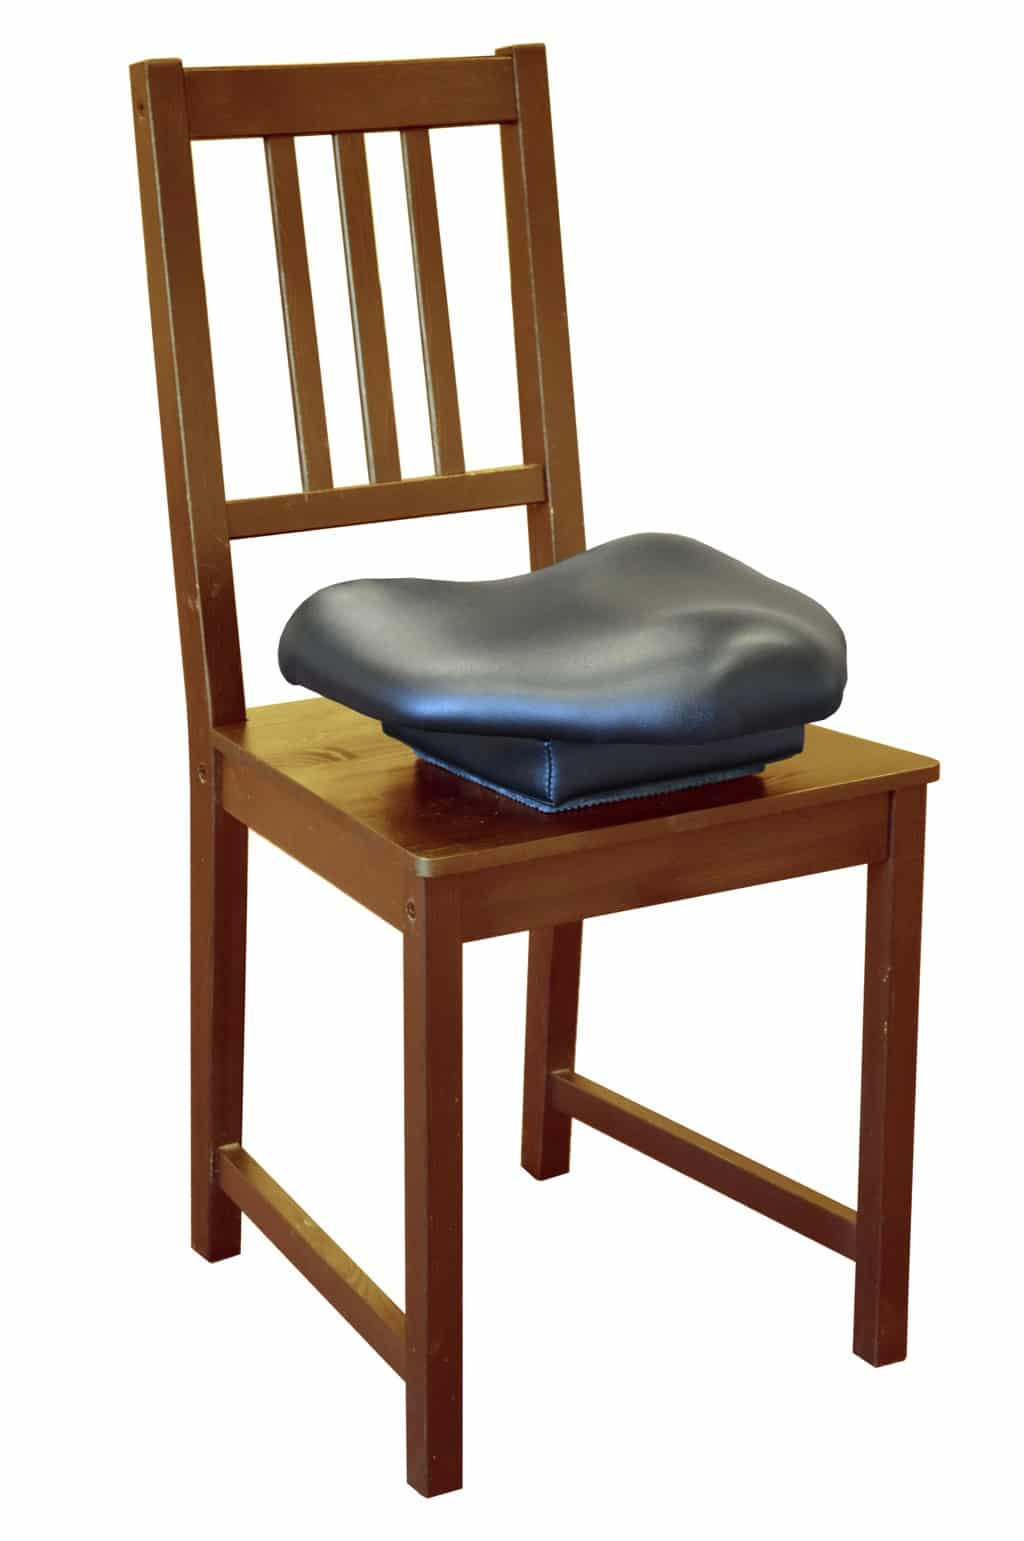 portable wobble chair exercises swing homestore therapeutic the pettibon system on wooden